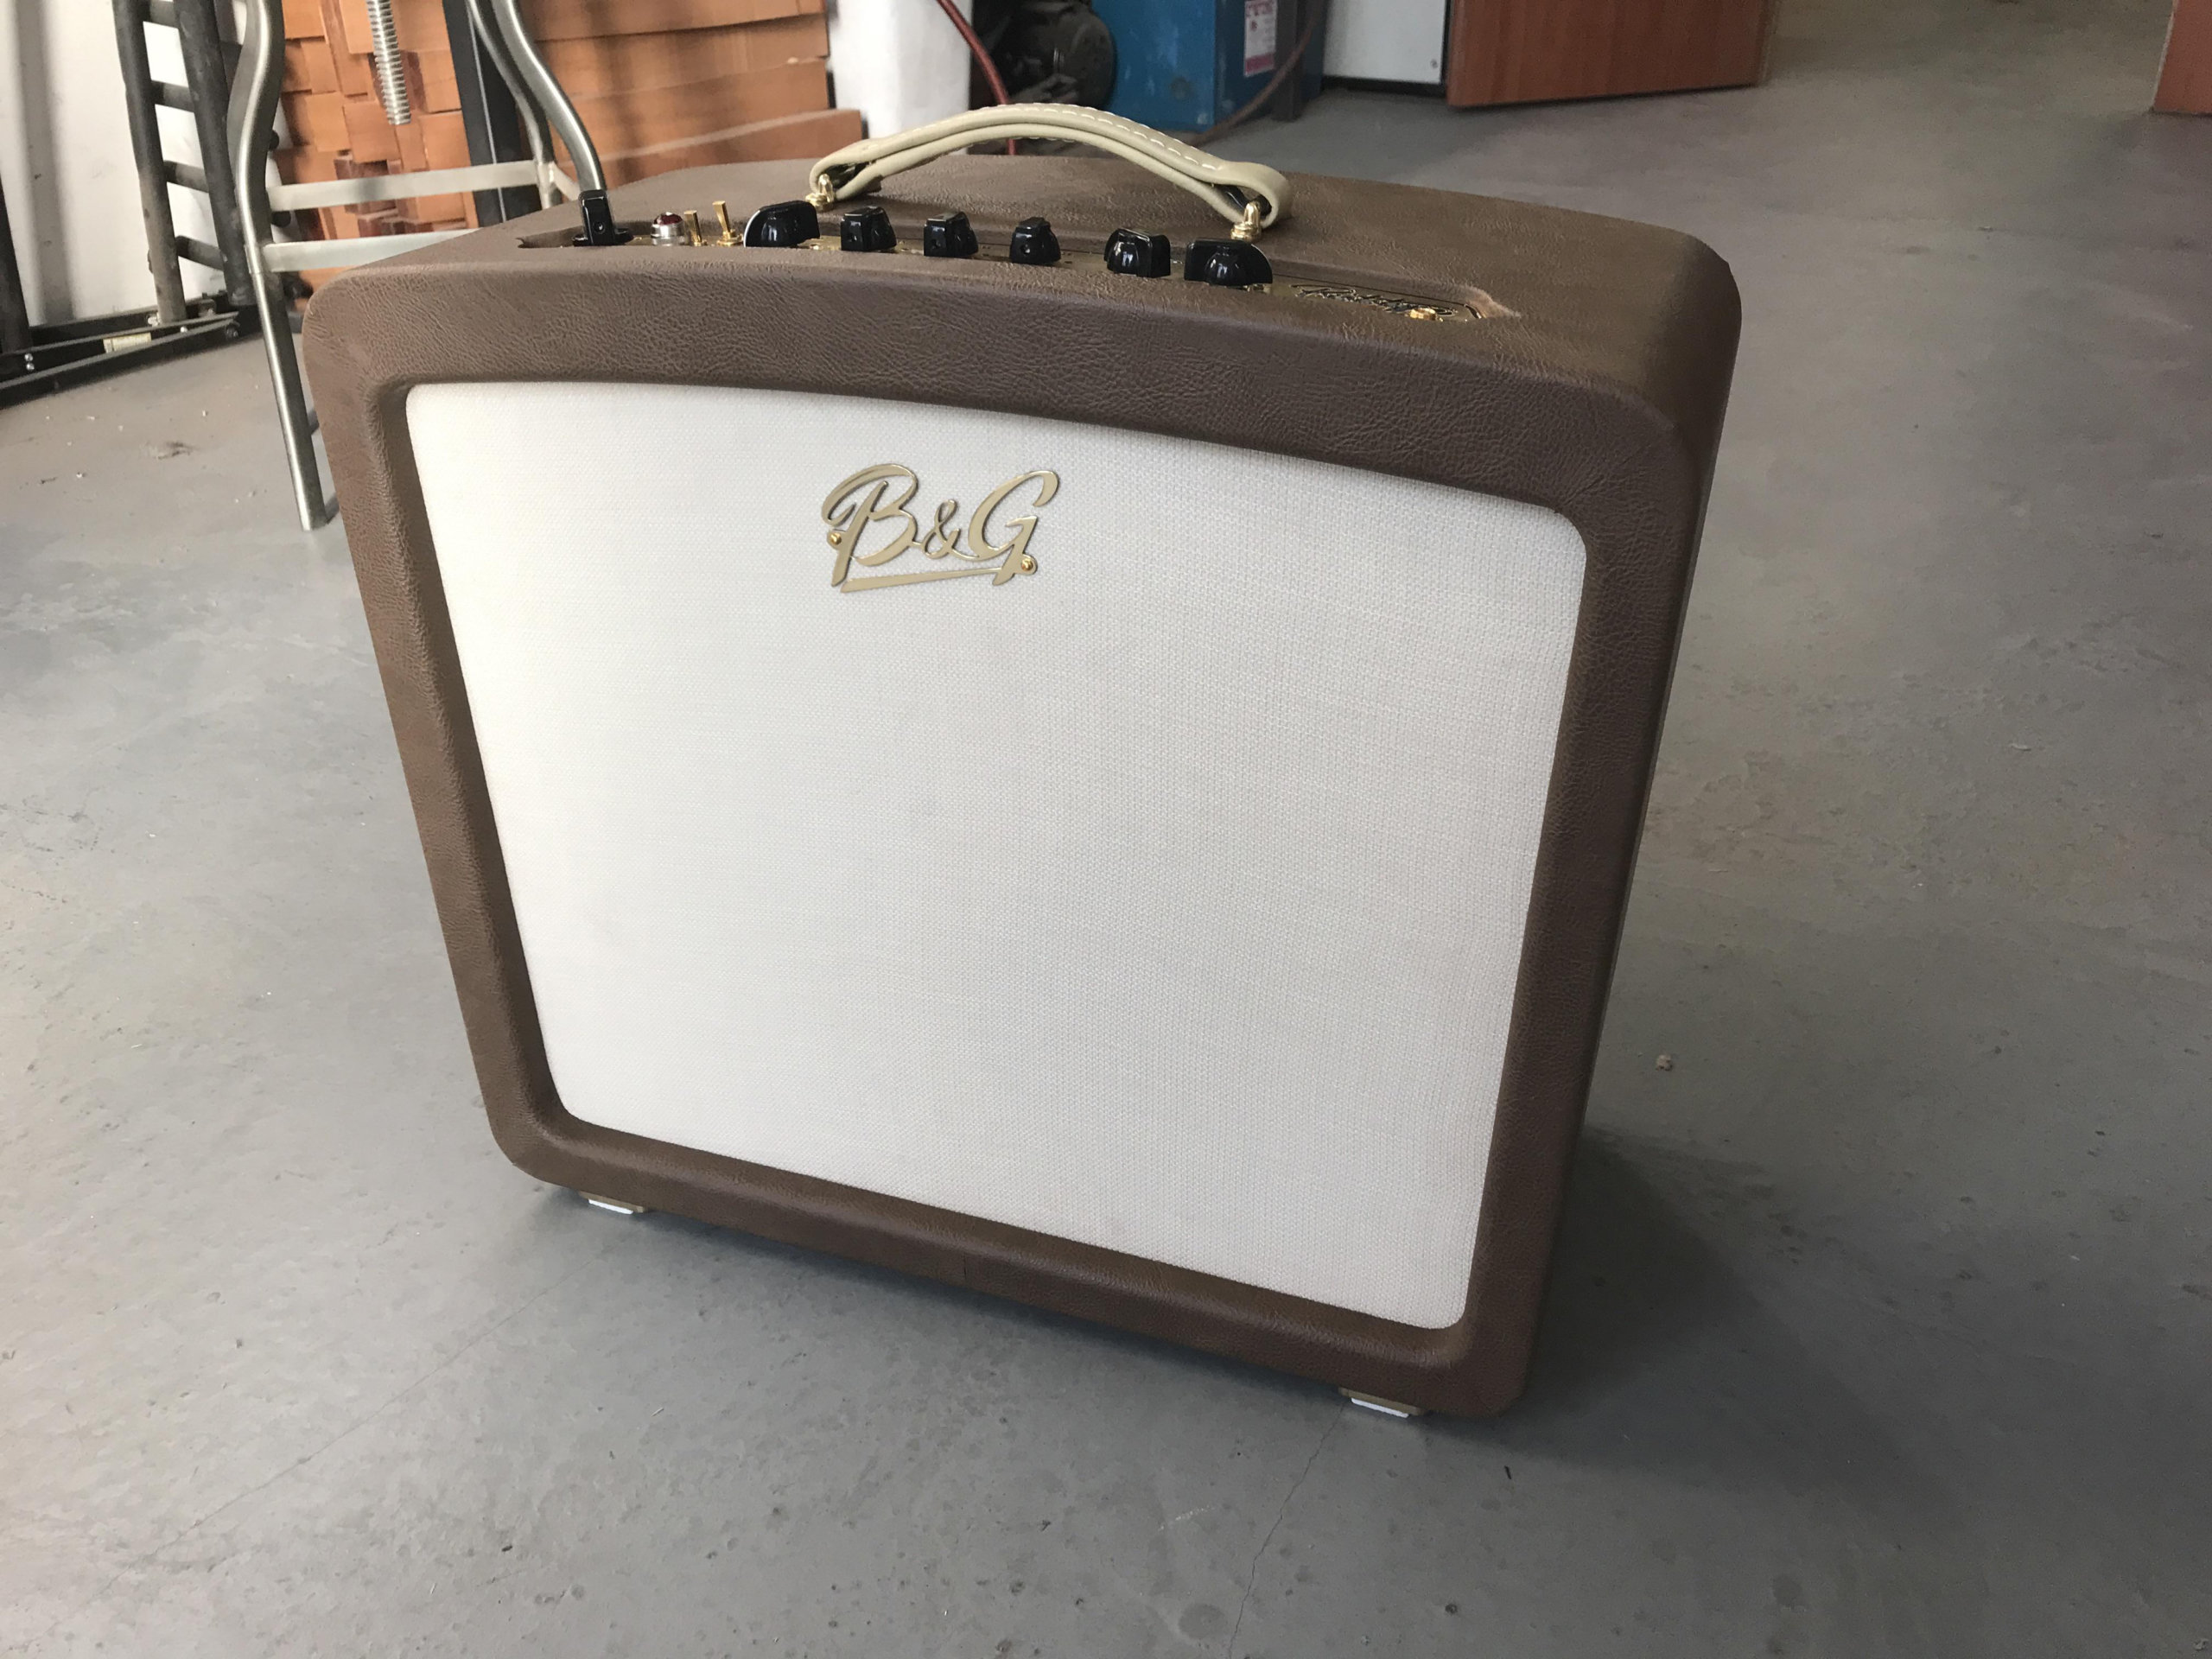 Vintage tube amps inspire B&G Guitars' new Prototype